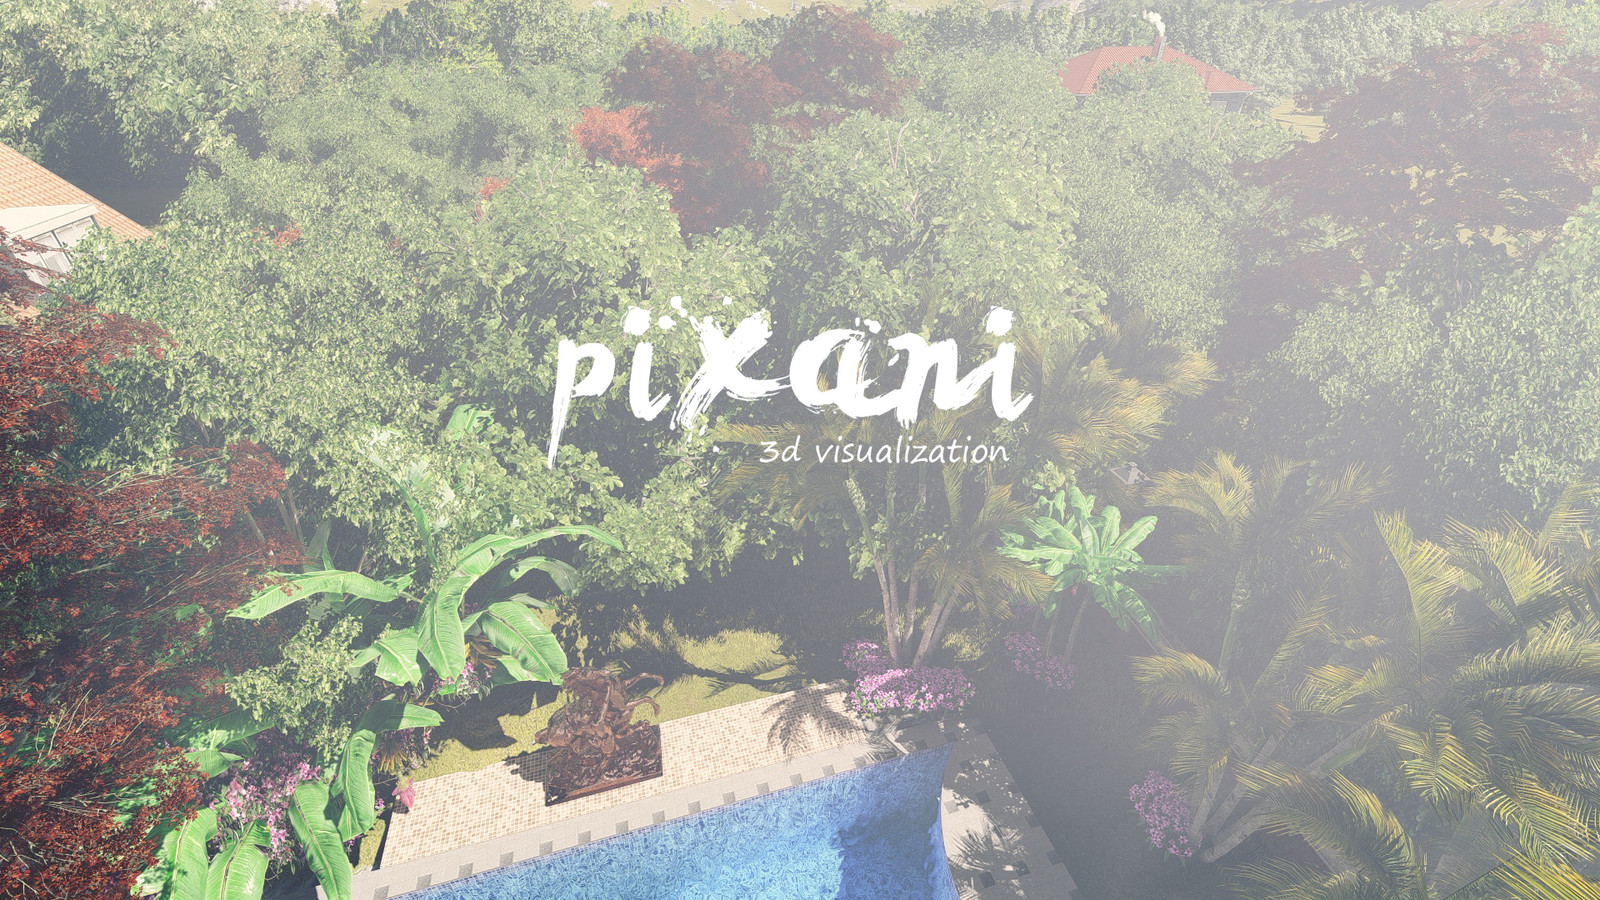 PIXANI 3D VISUALIZATION high-end visualization, rendering and animation